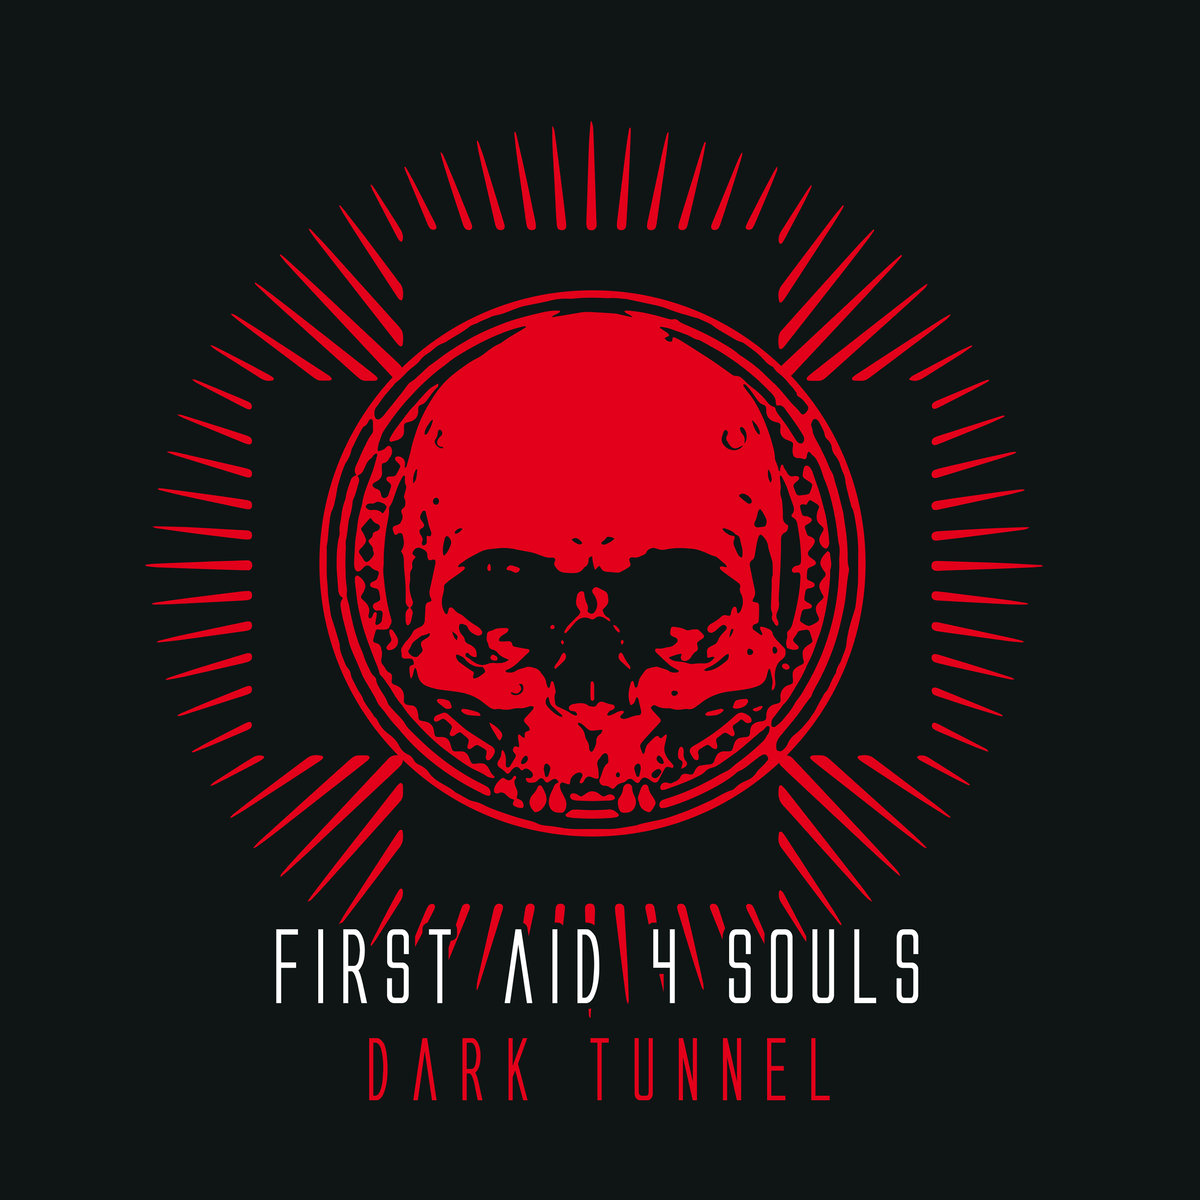 First Aid 4 Souls - Dark Tunnel